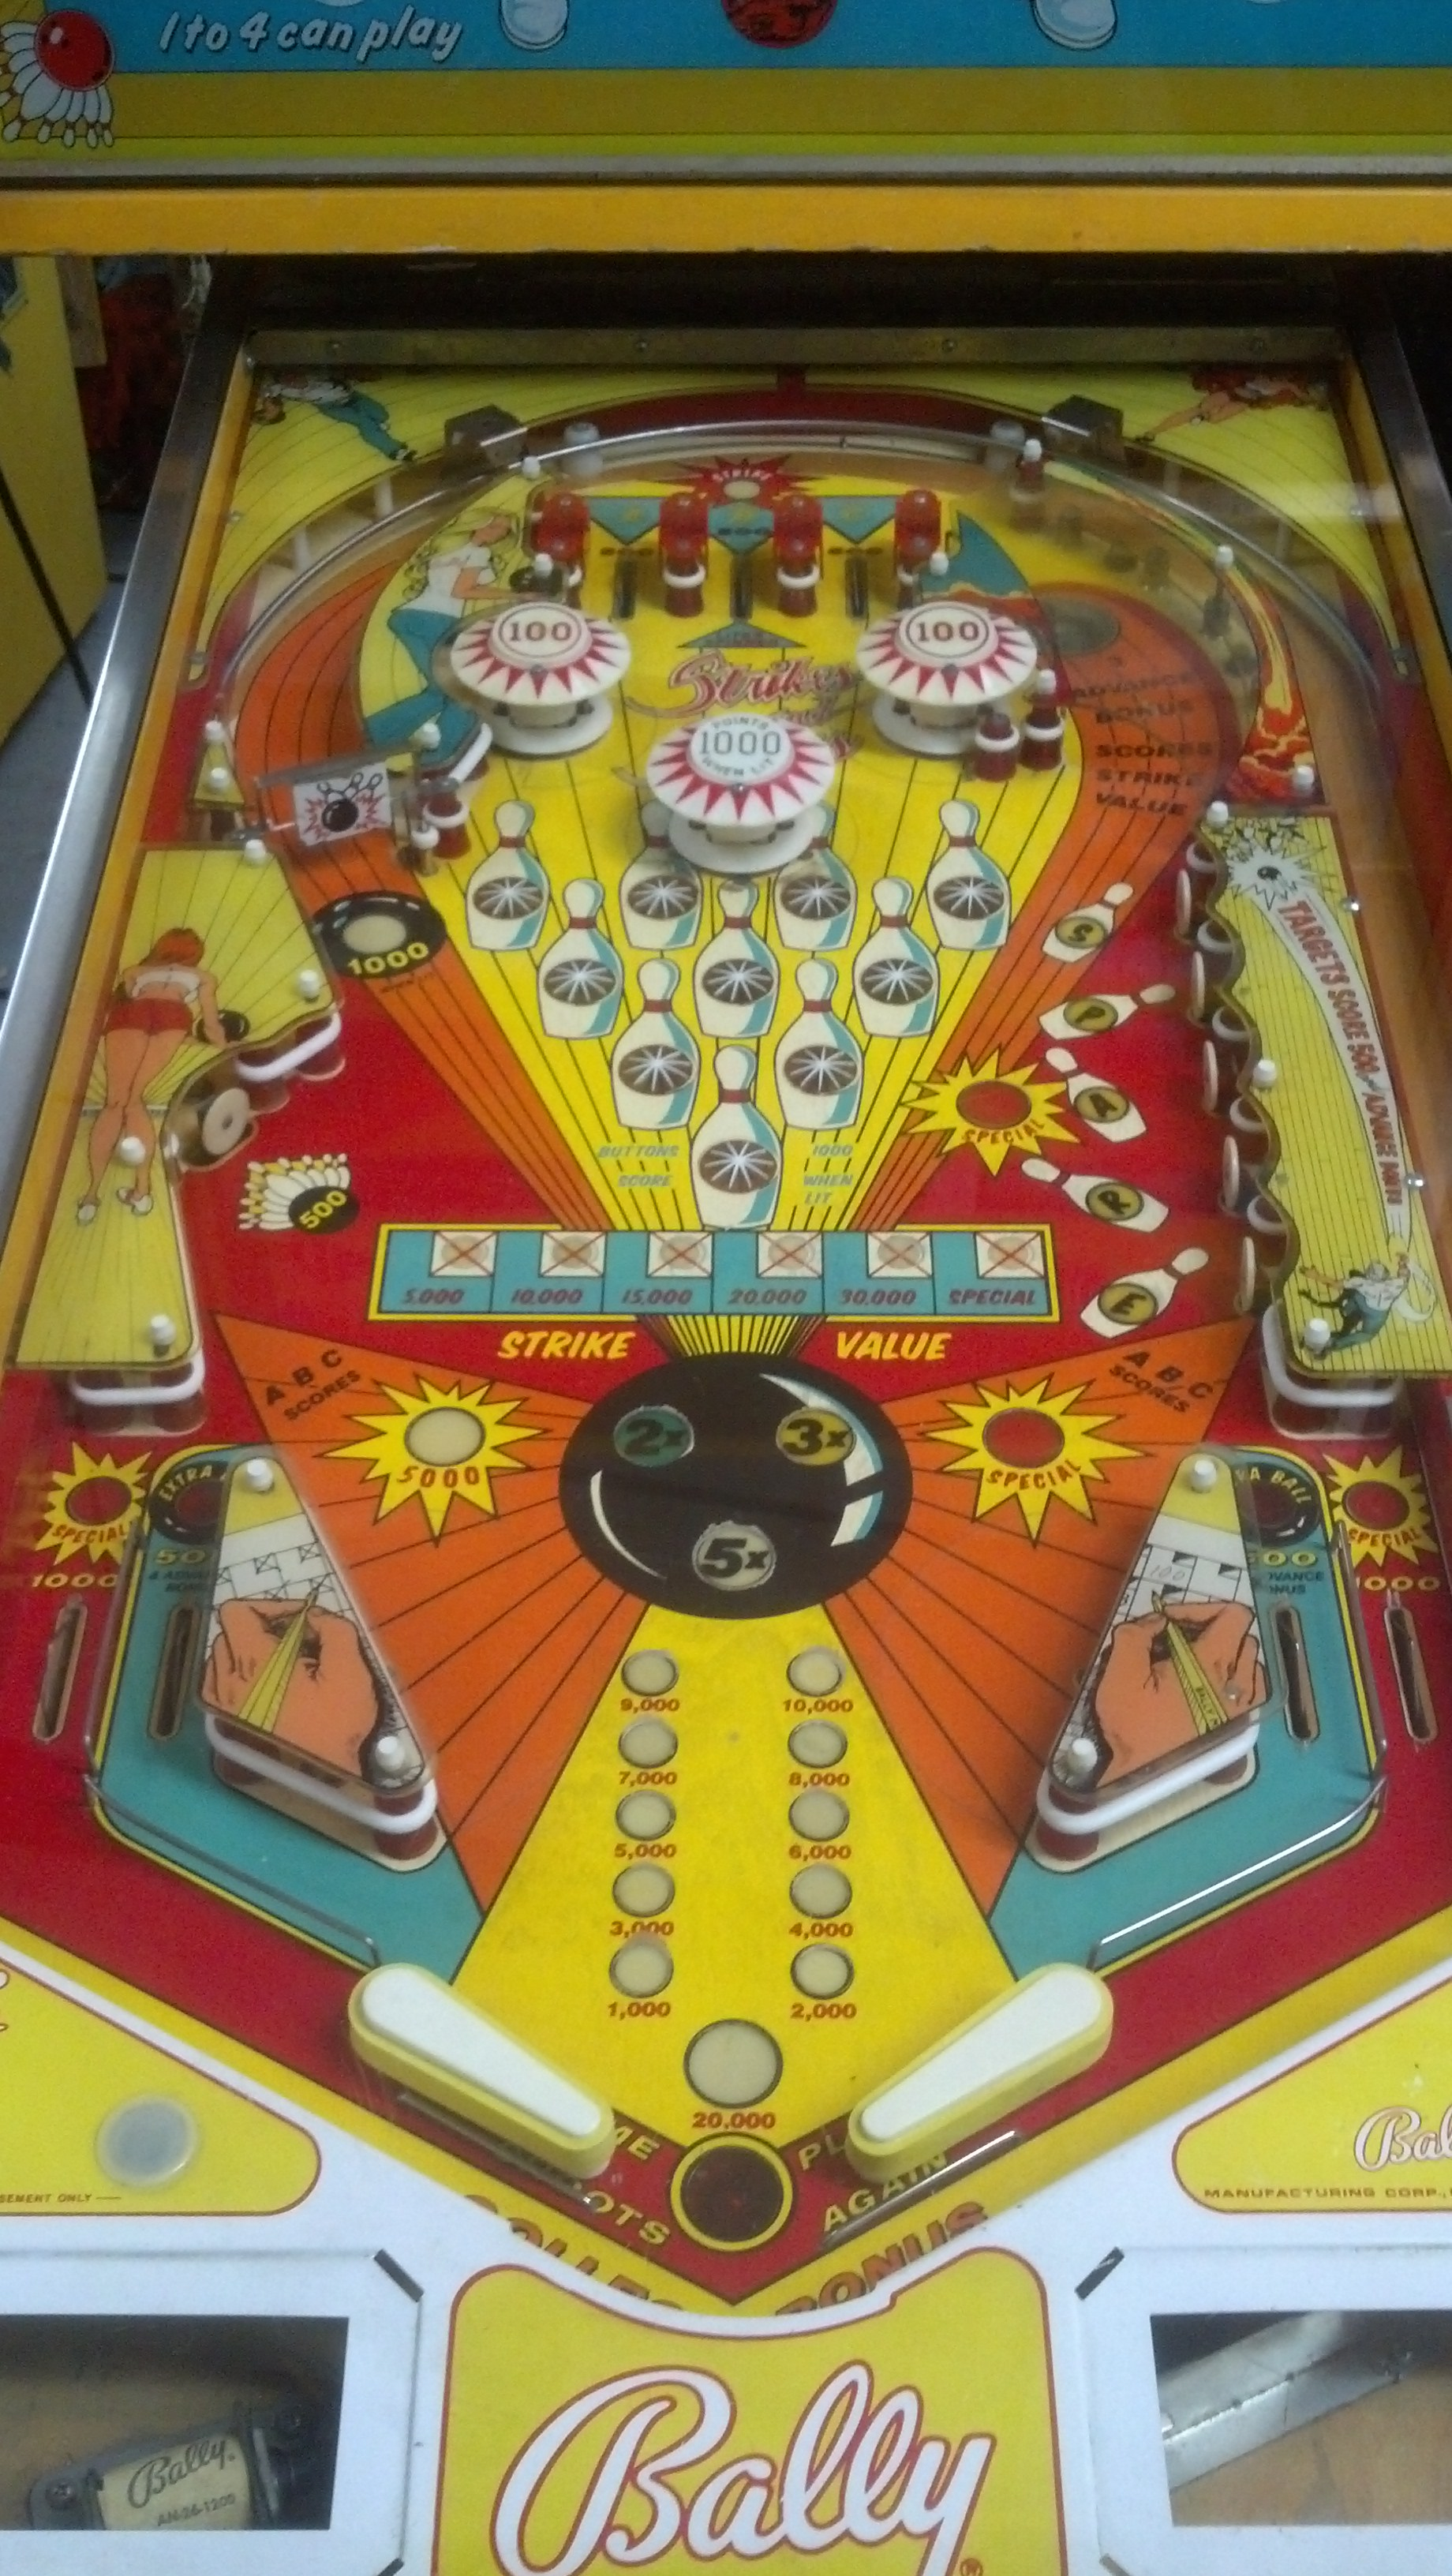 Strikes And Spares Pinball Video Game911